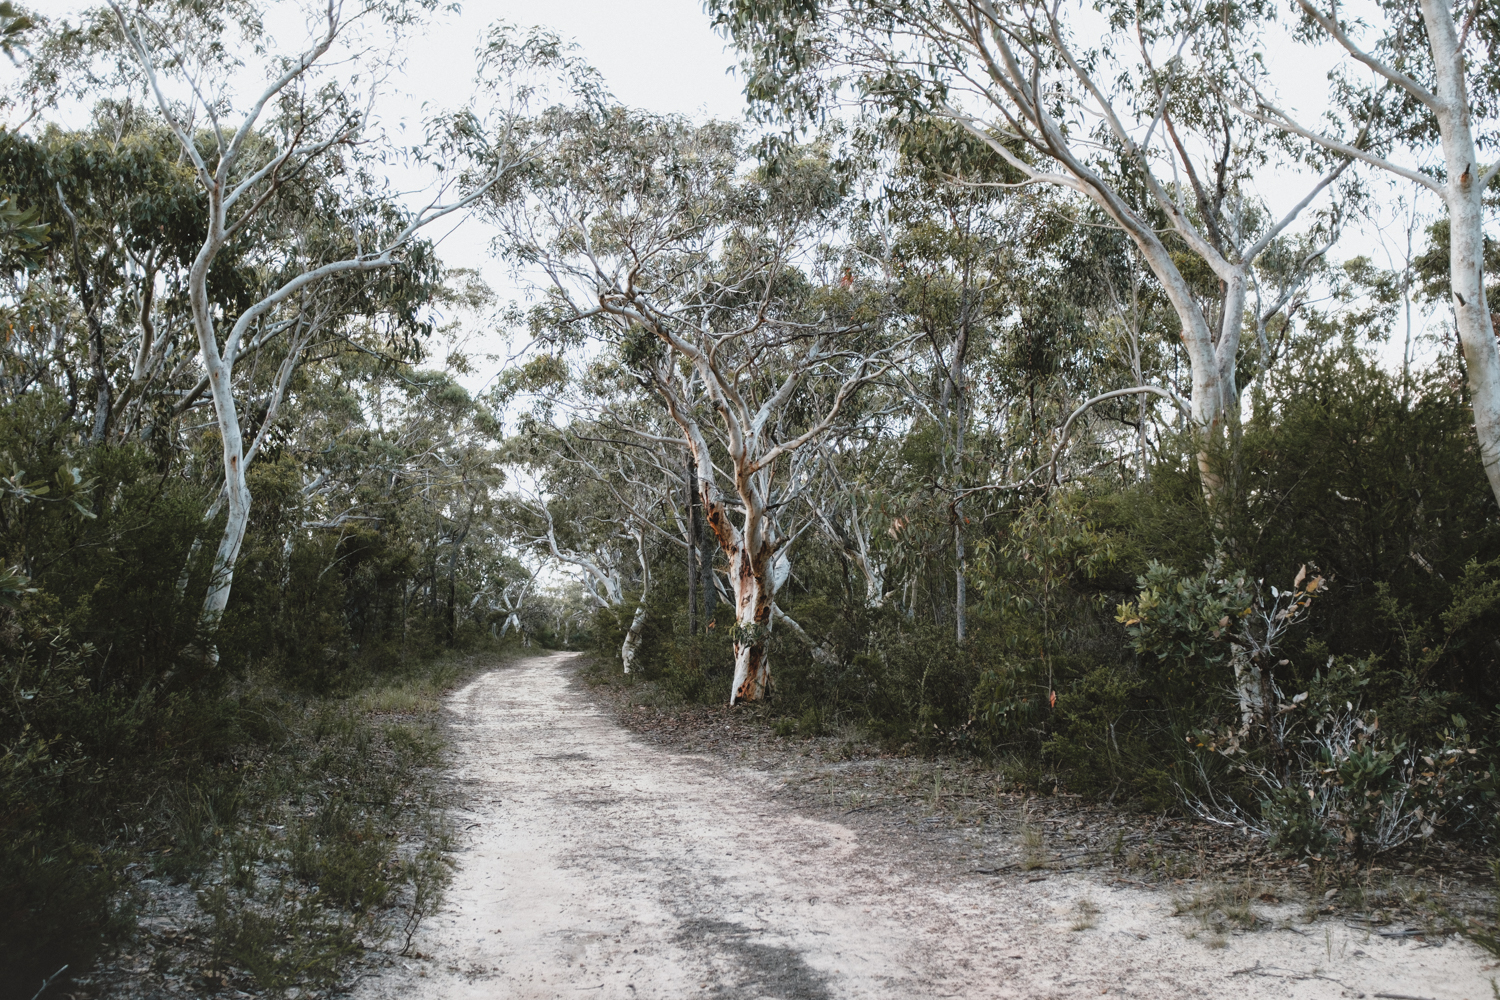 Quarry Road Track, Dural (A blog post by Rhonda.H.Y.Mason)